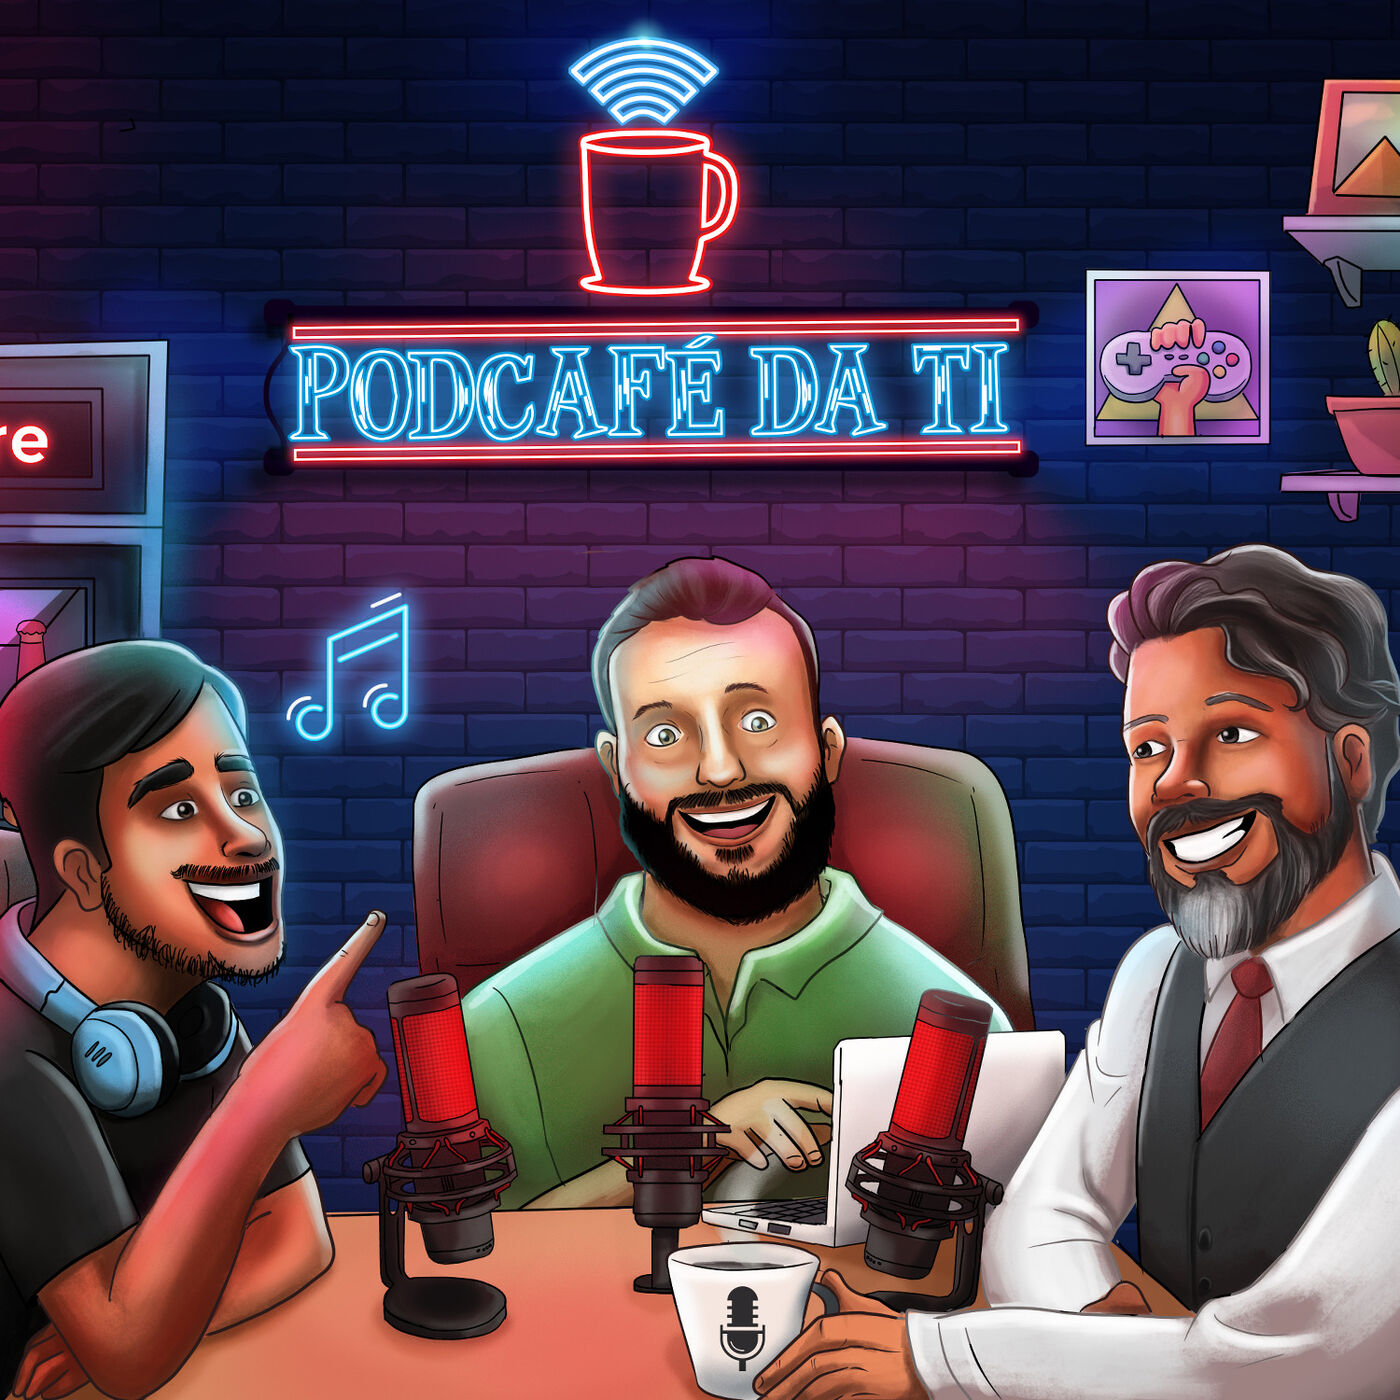 Podcast artwork